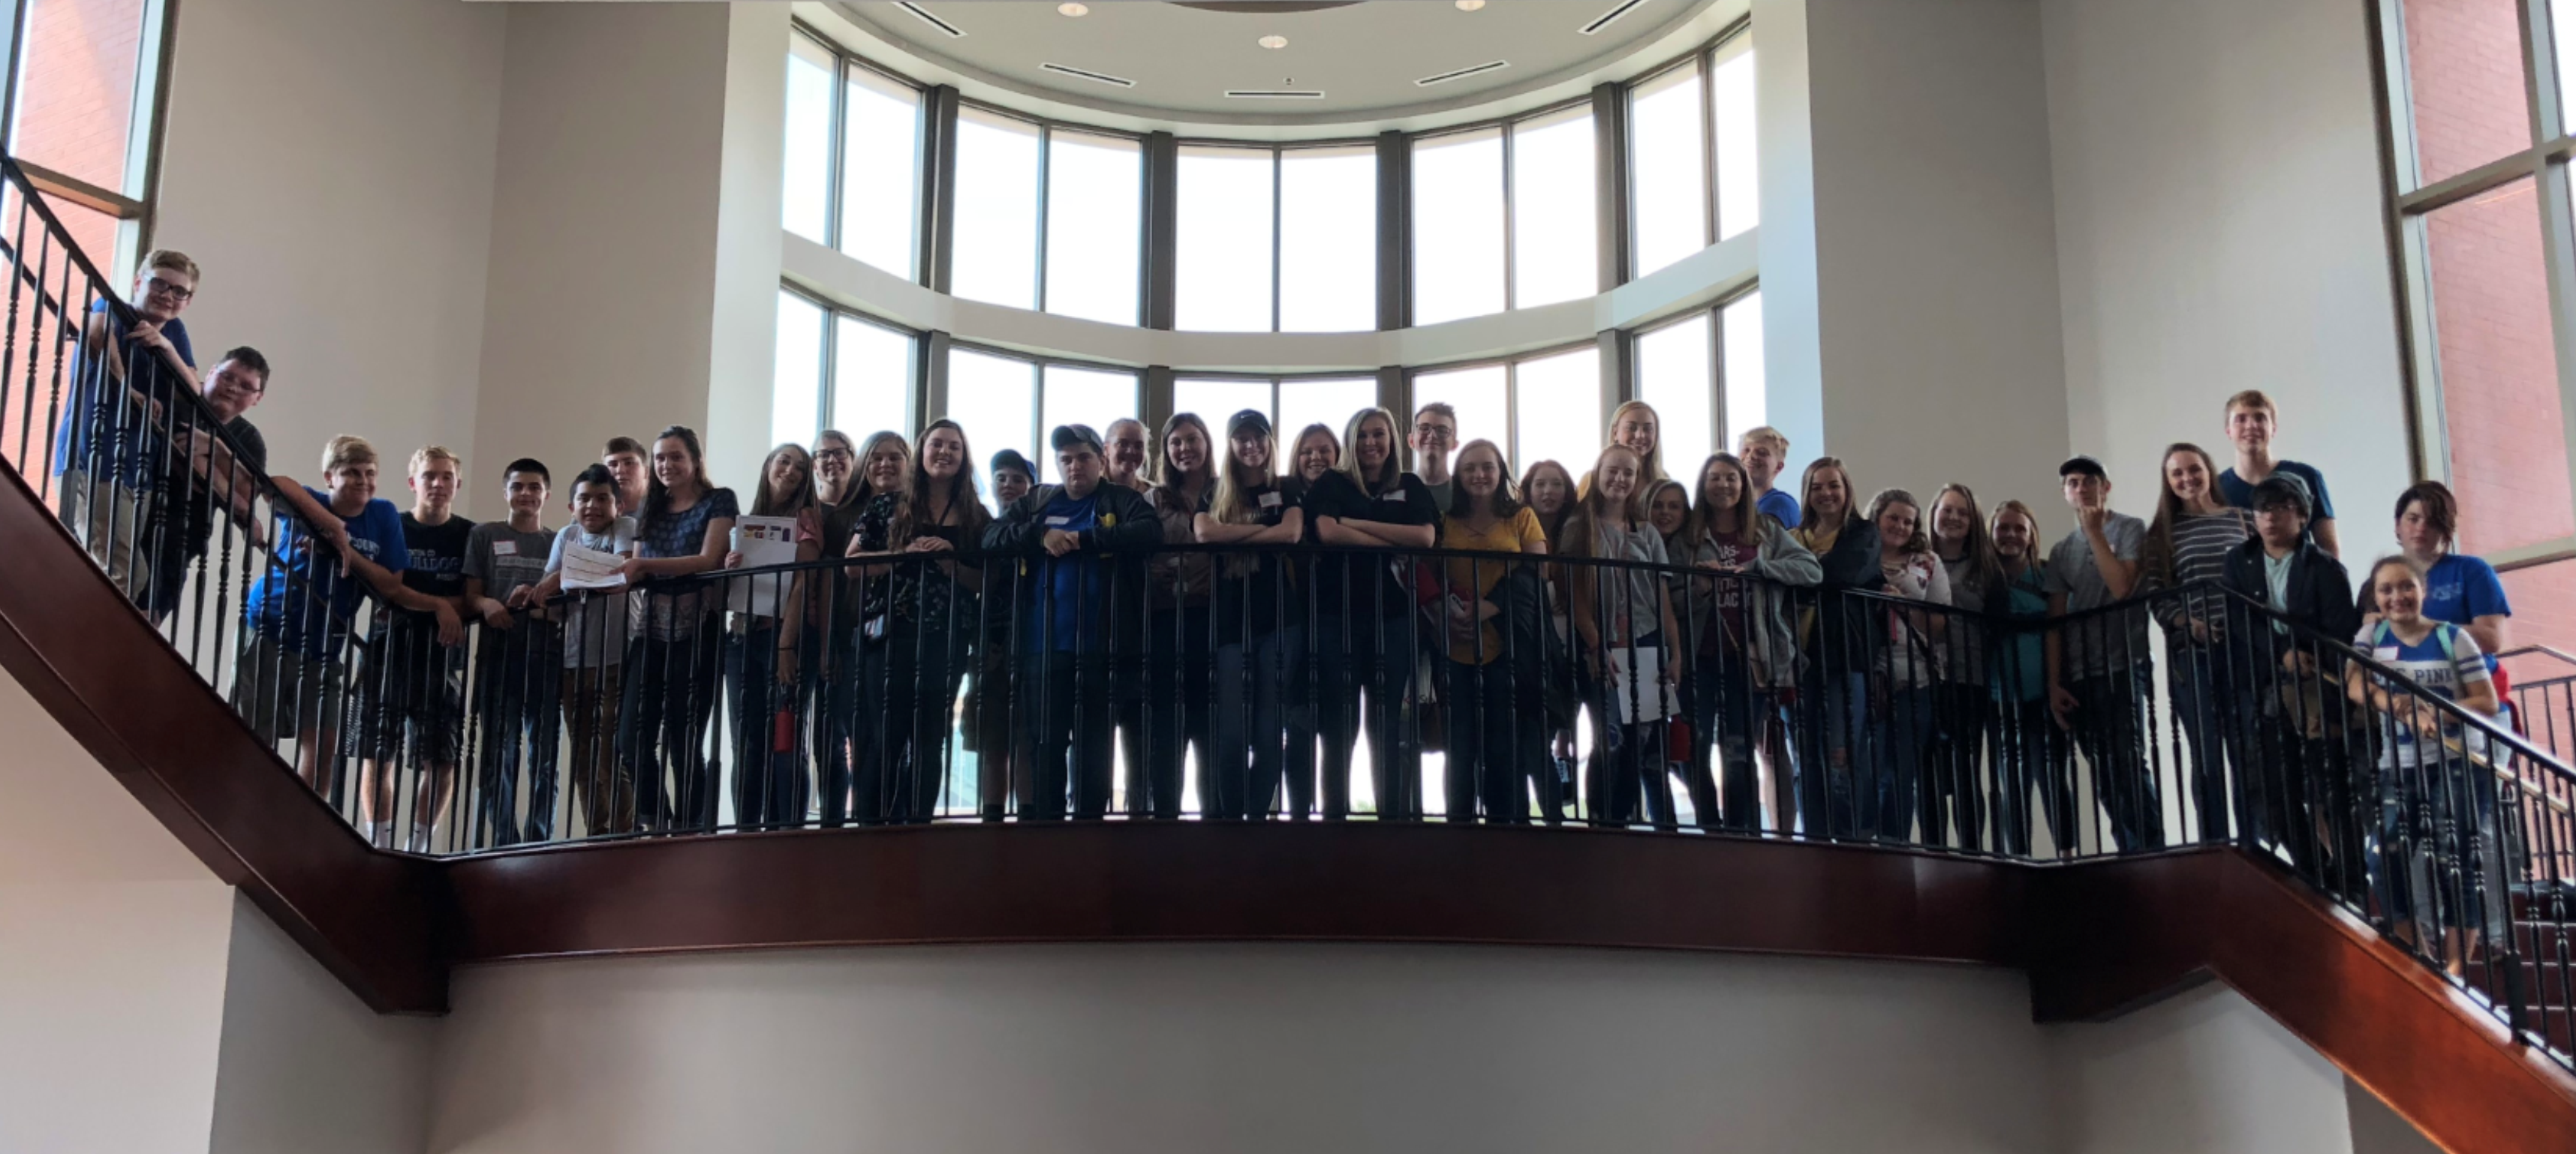 On Friday, September 21st, thirty-seven students from Clinton County High School participated in this High School Leadership Conference at Western Kentucky University.